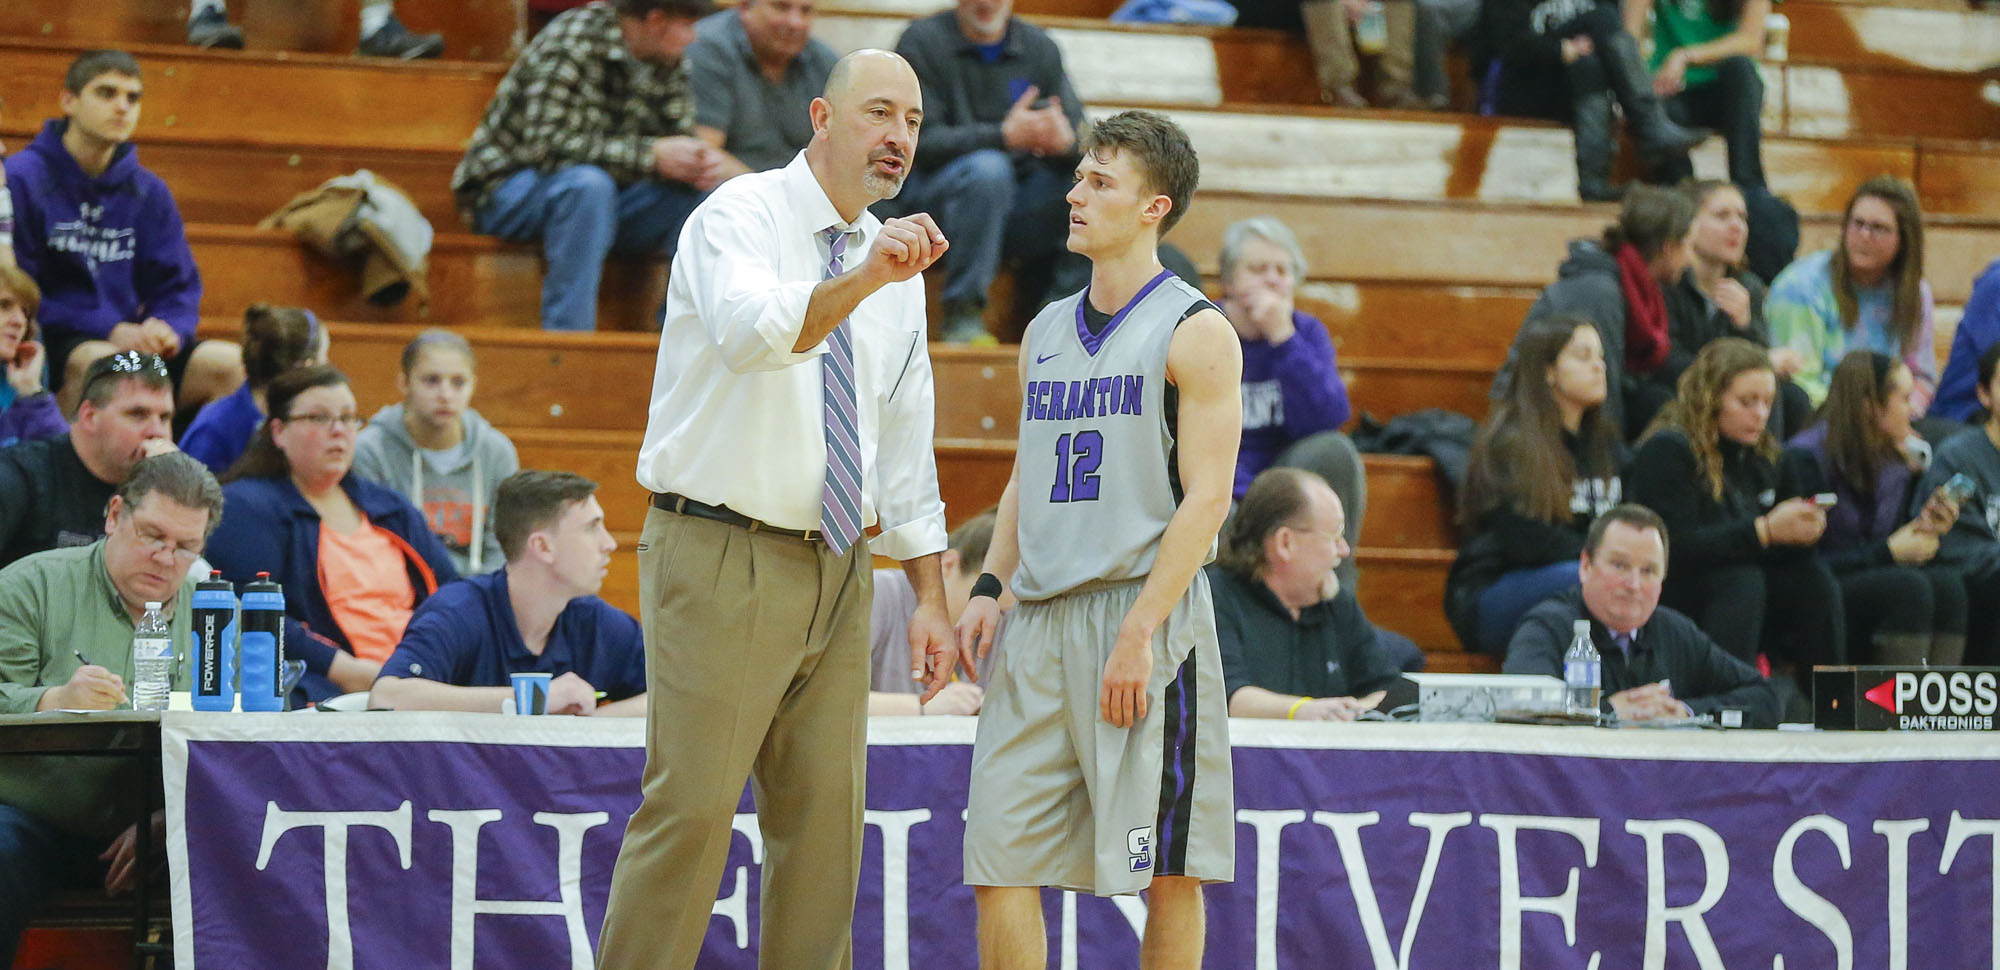 Guard Kevin Doolan is one of four starters returning for head coach Carl Danzig this season.